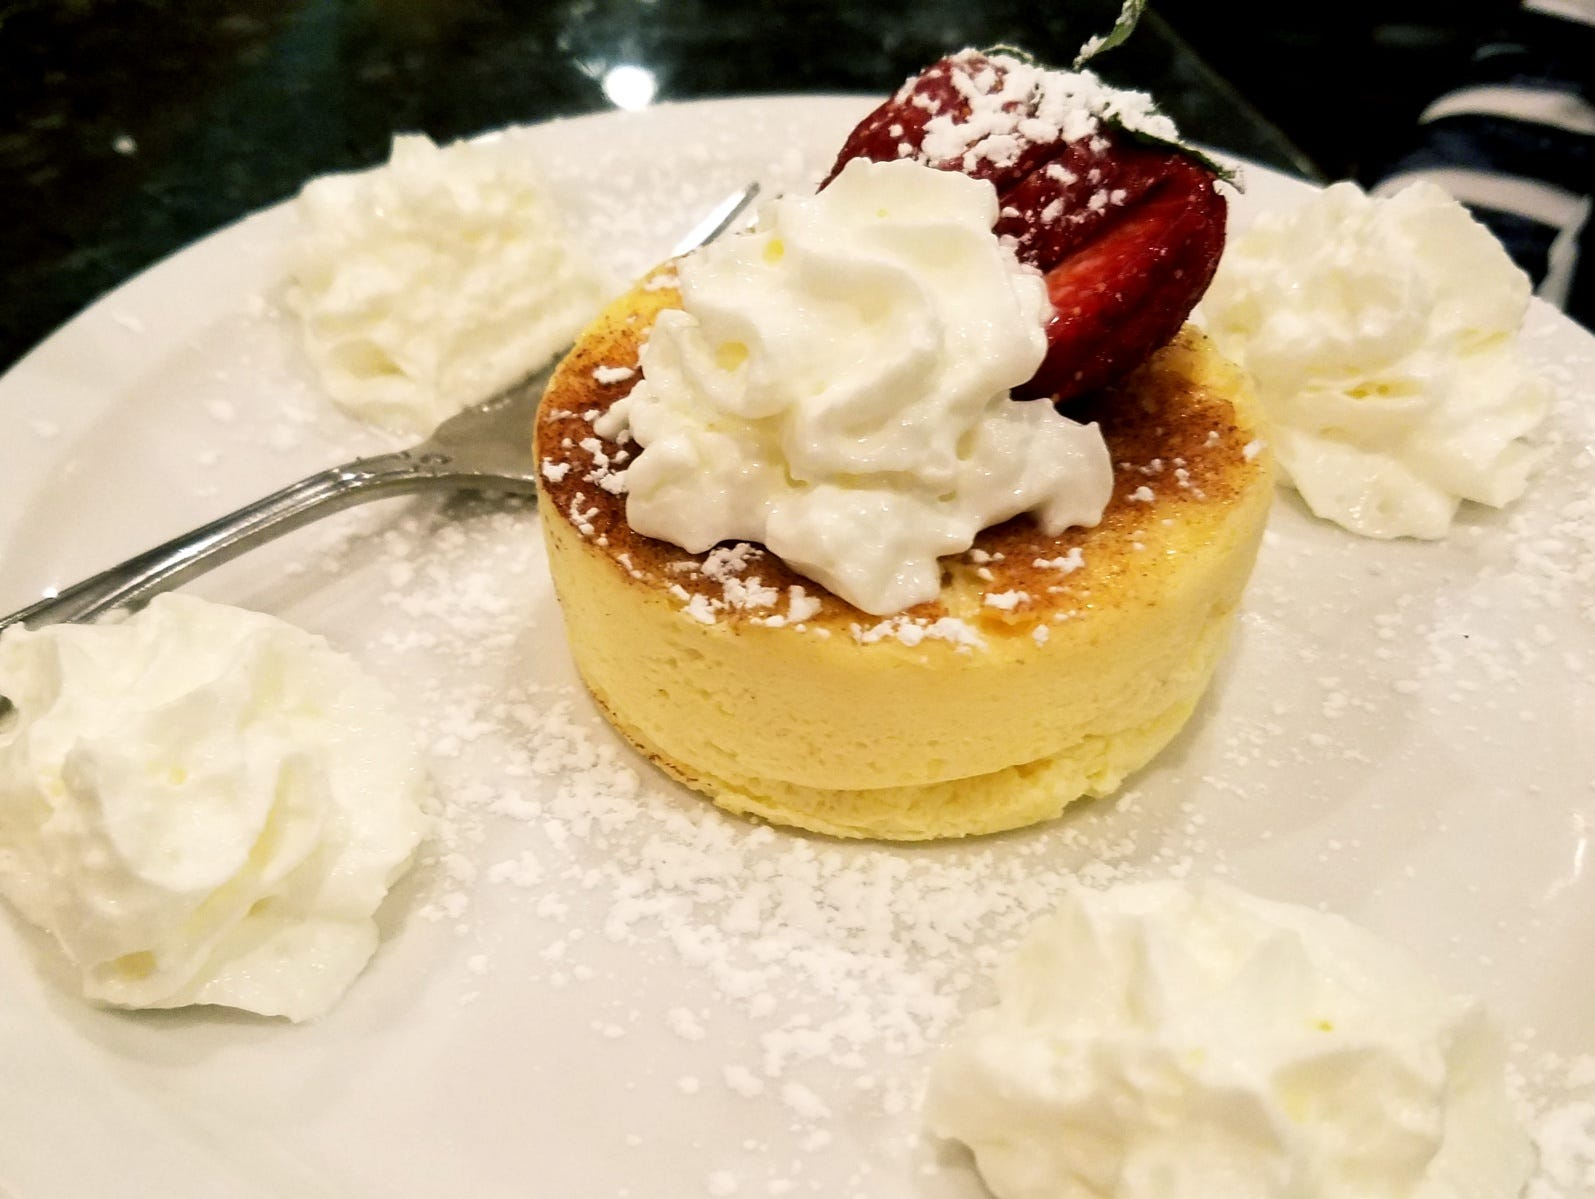 The ricotta cheesecake was made in house and was dense and rich but not overly sweet.